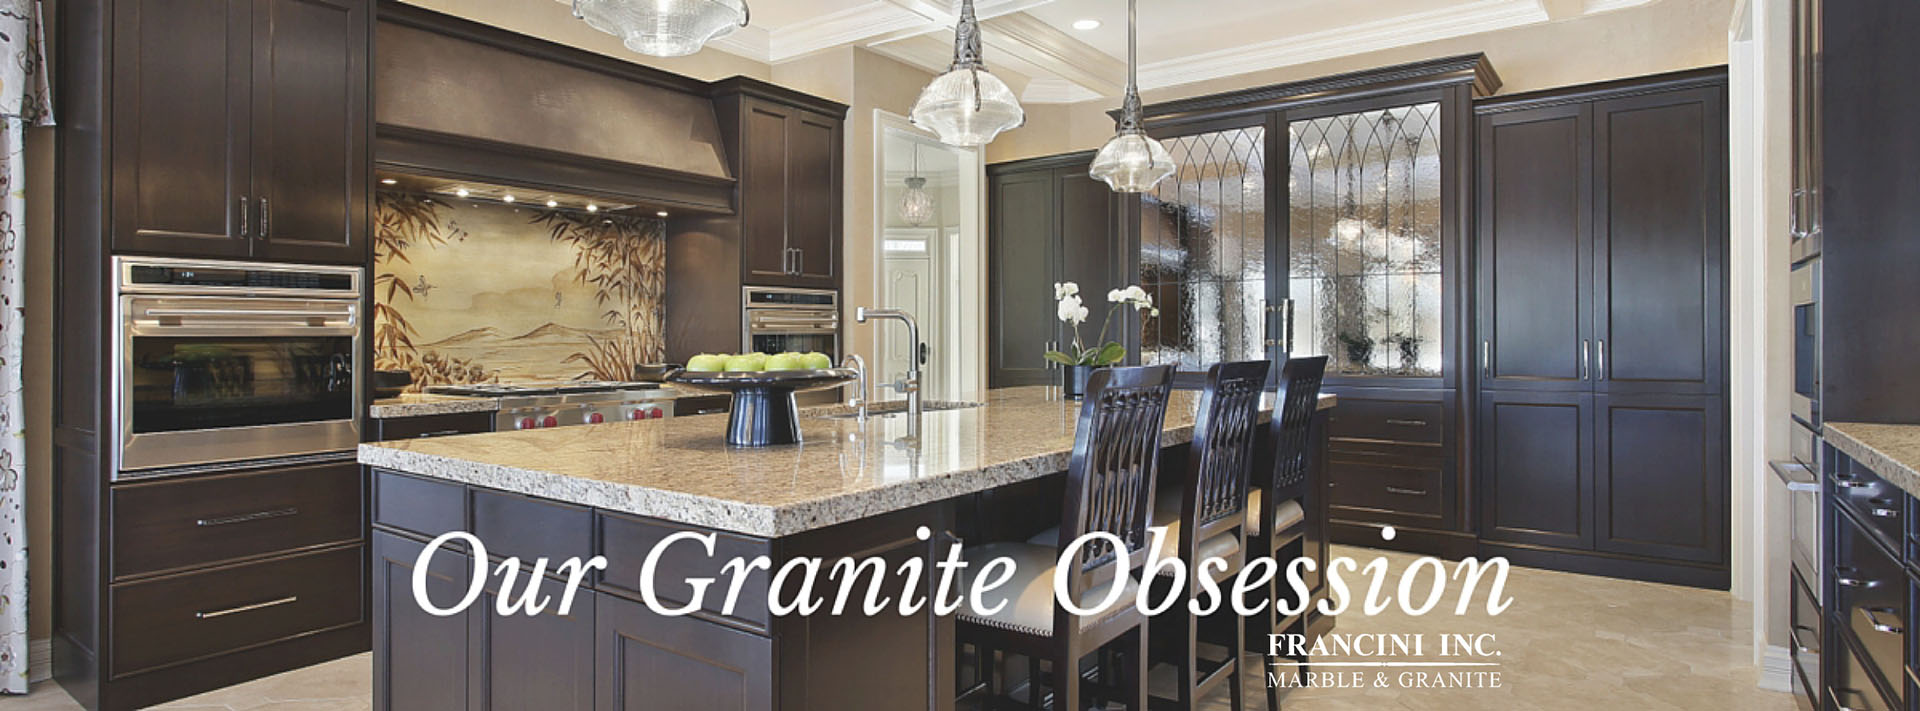 When Did We Become Obsessed With Granite?